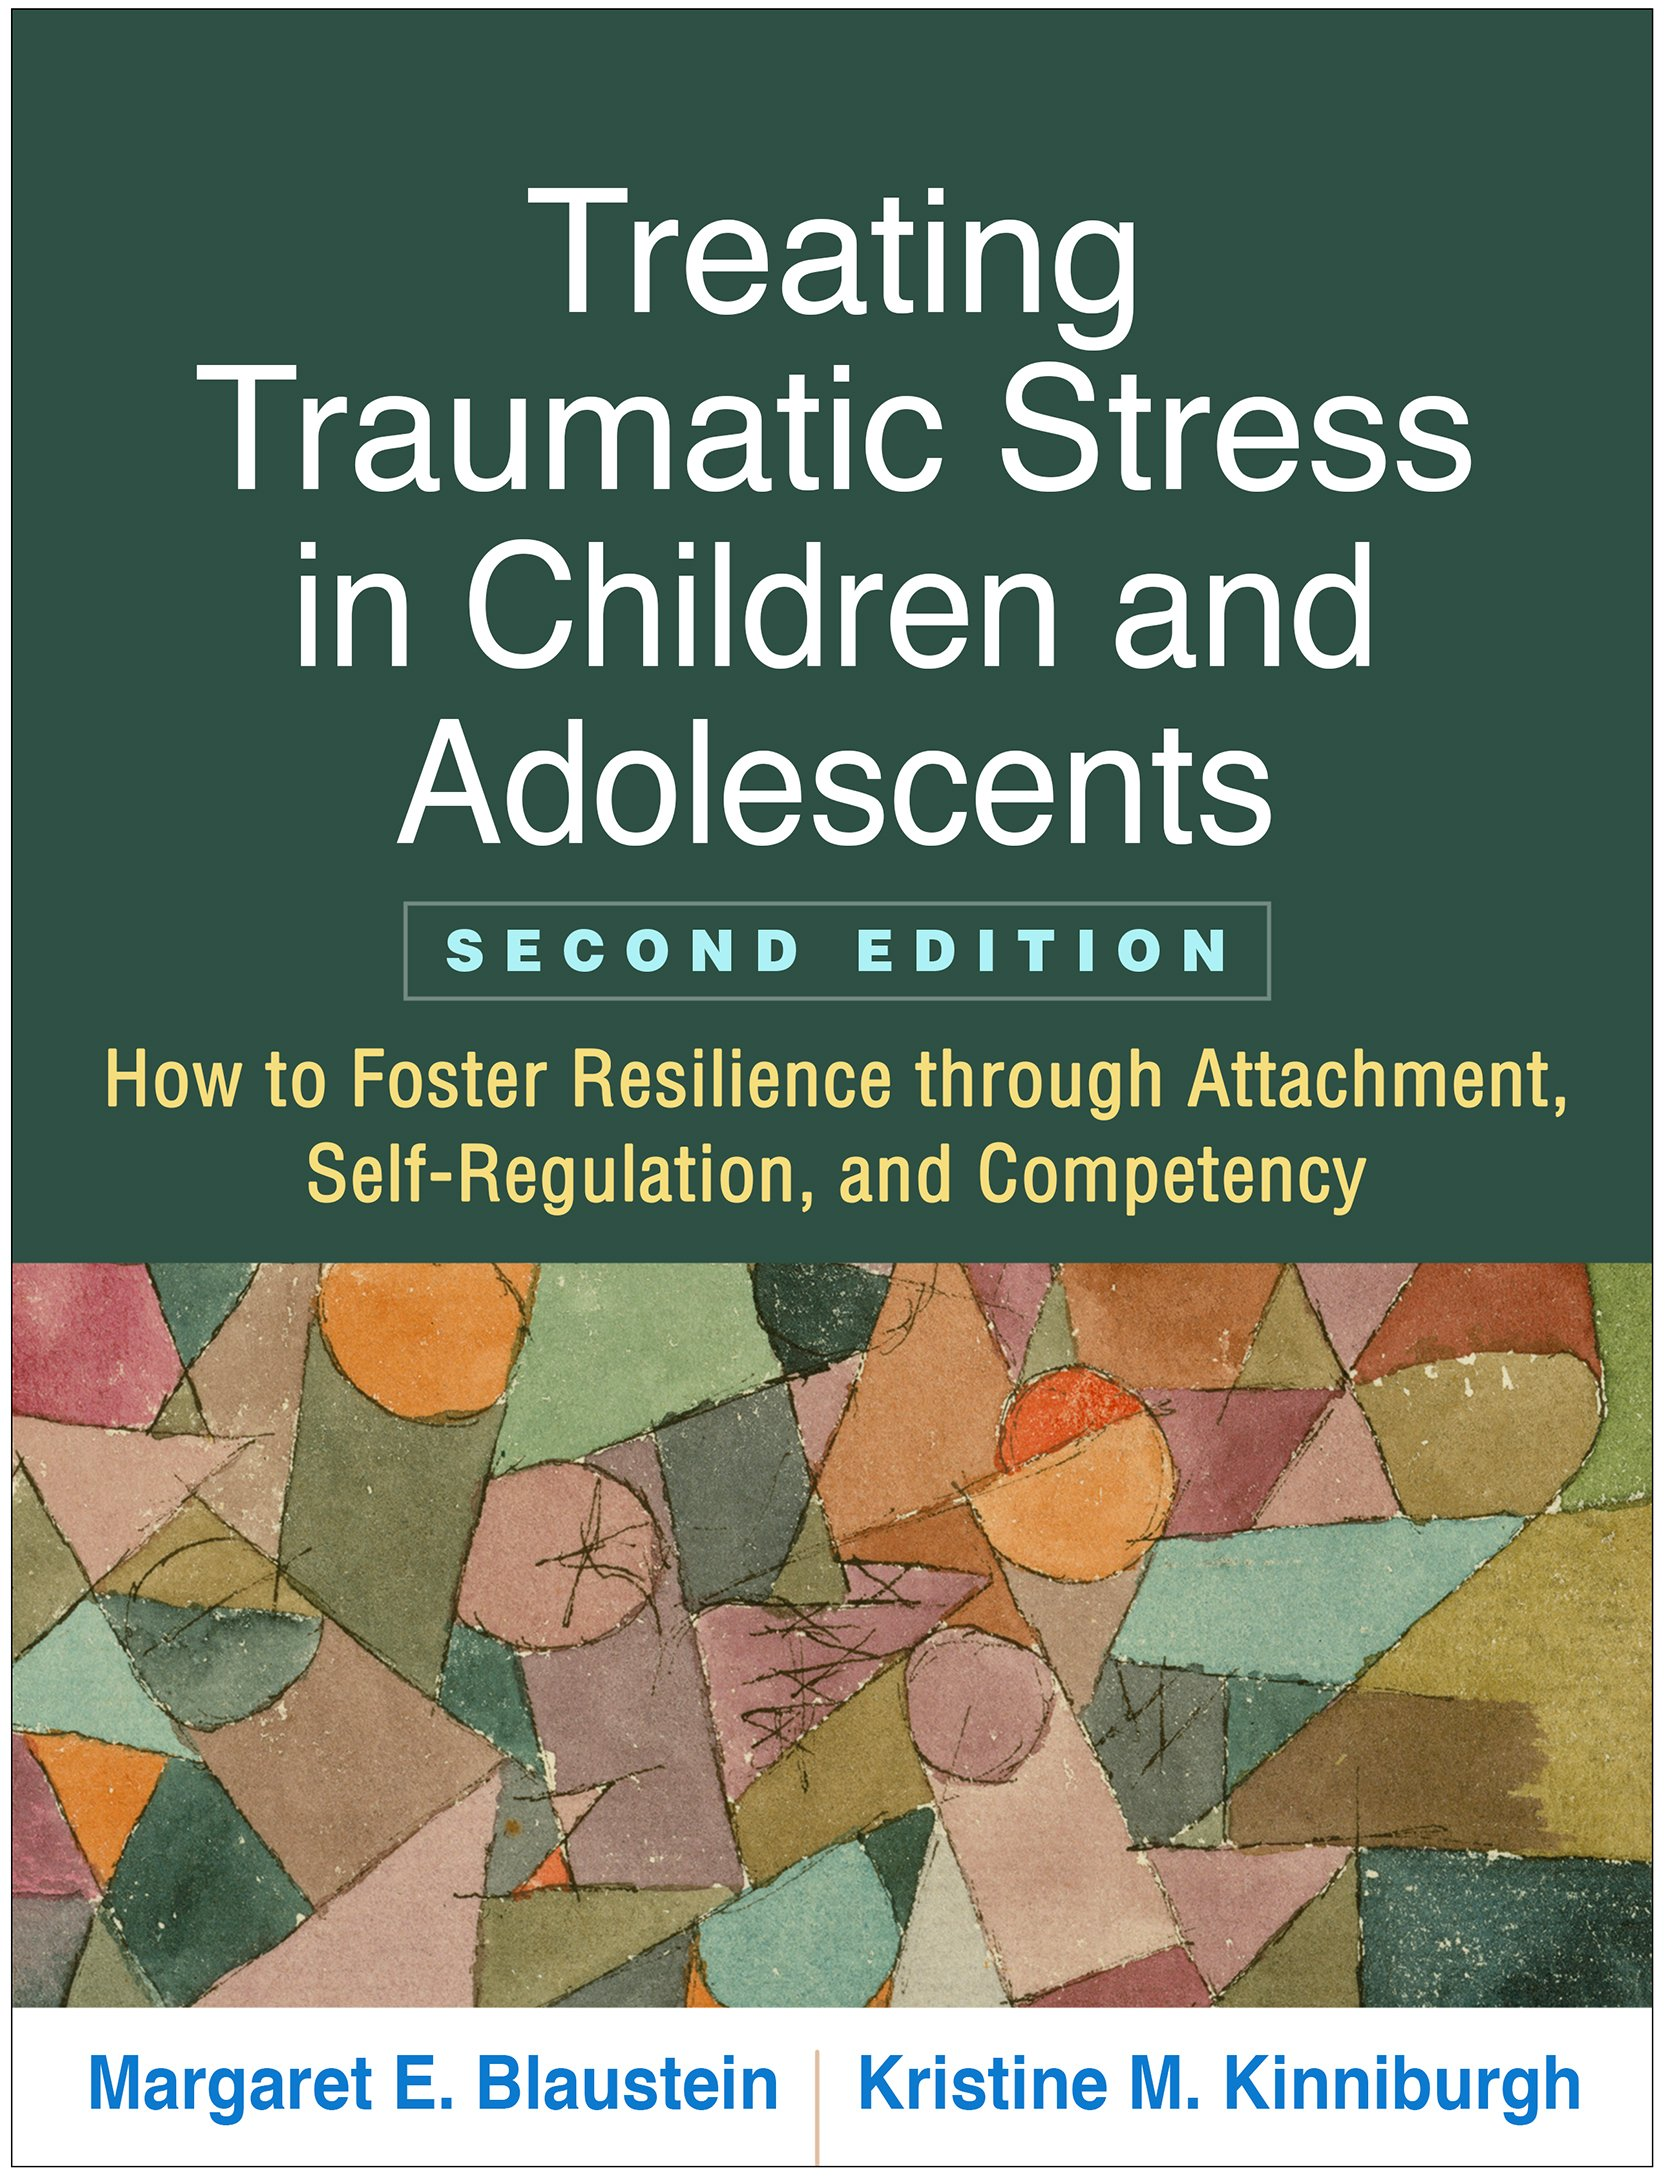 Treating Traumatic Stress in Children and Adolescents, Second Edition: How to Foster Resilience through Attachment, Self-Regulation, and Competency by The Guilford Press